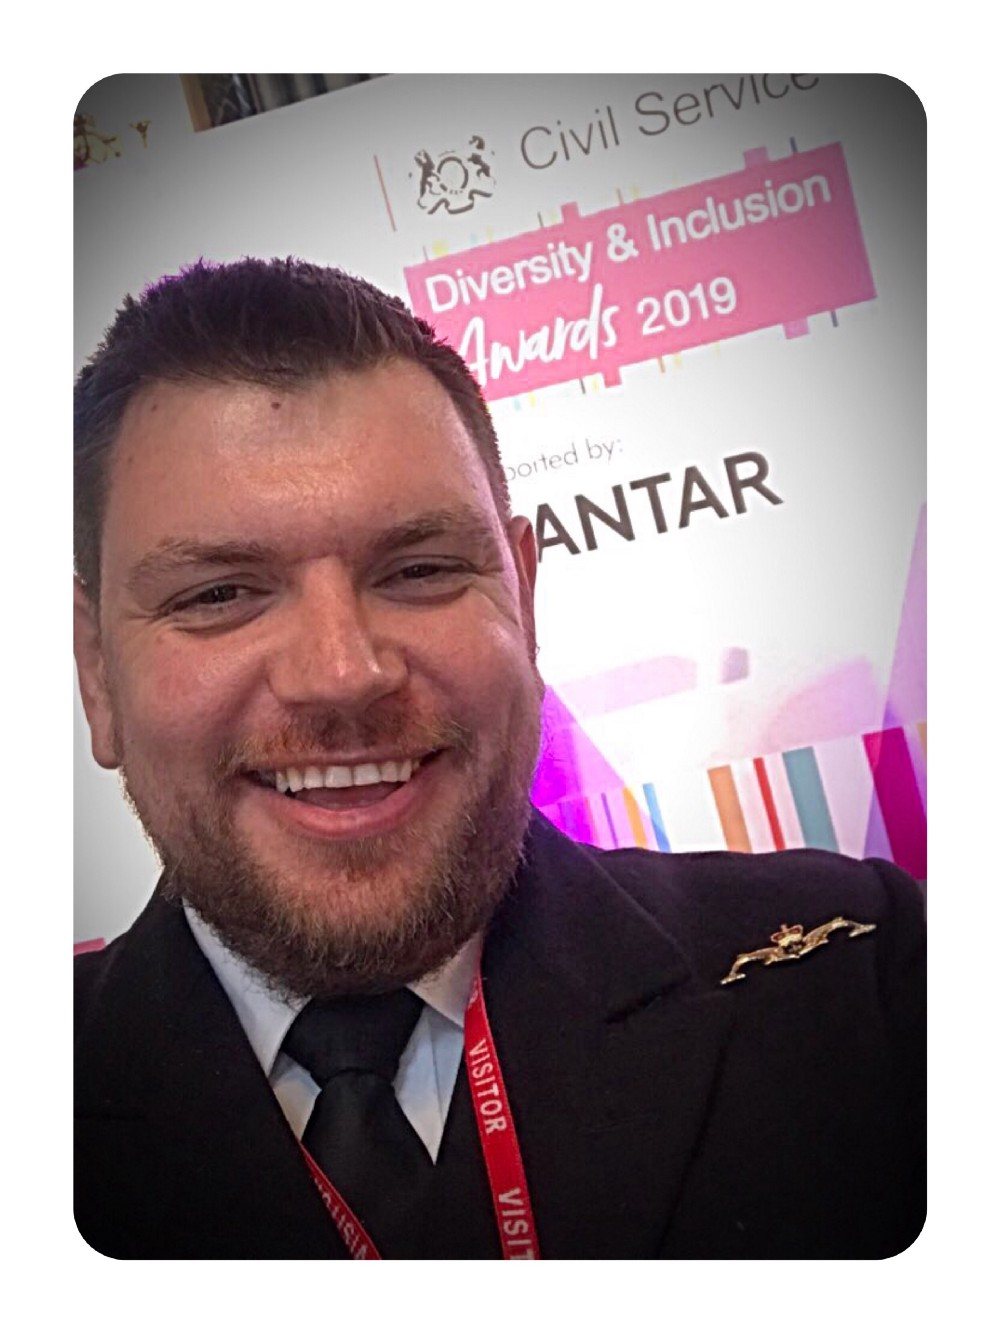 A selfie of a man in a Navy uniform, smiling at the 2019 Diversity and Inclusion awards